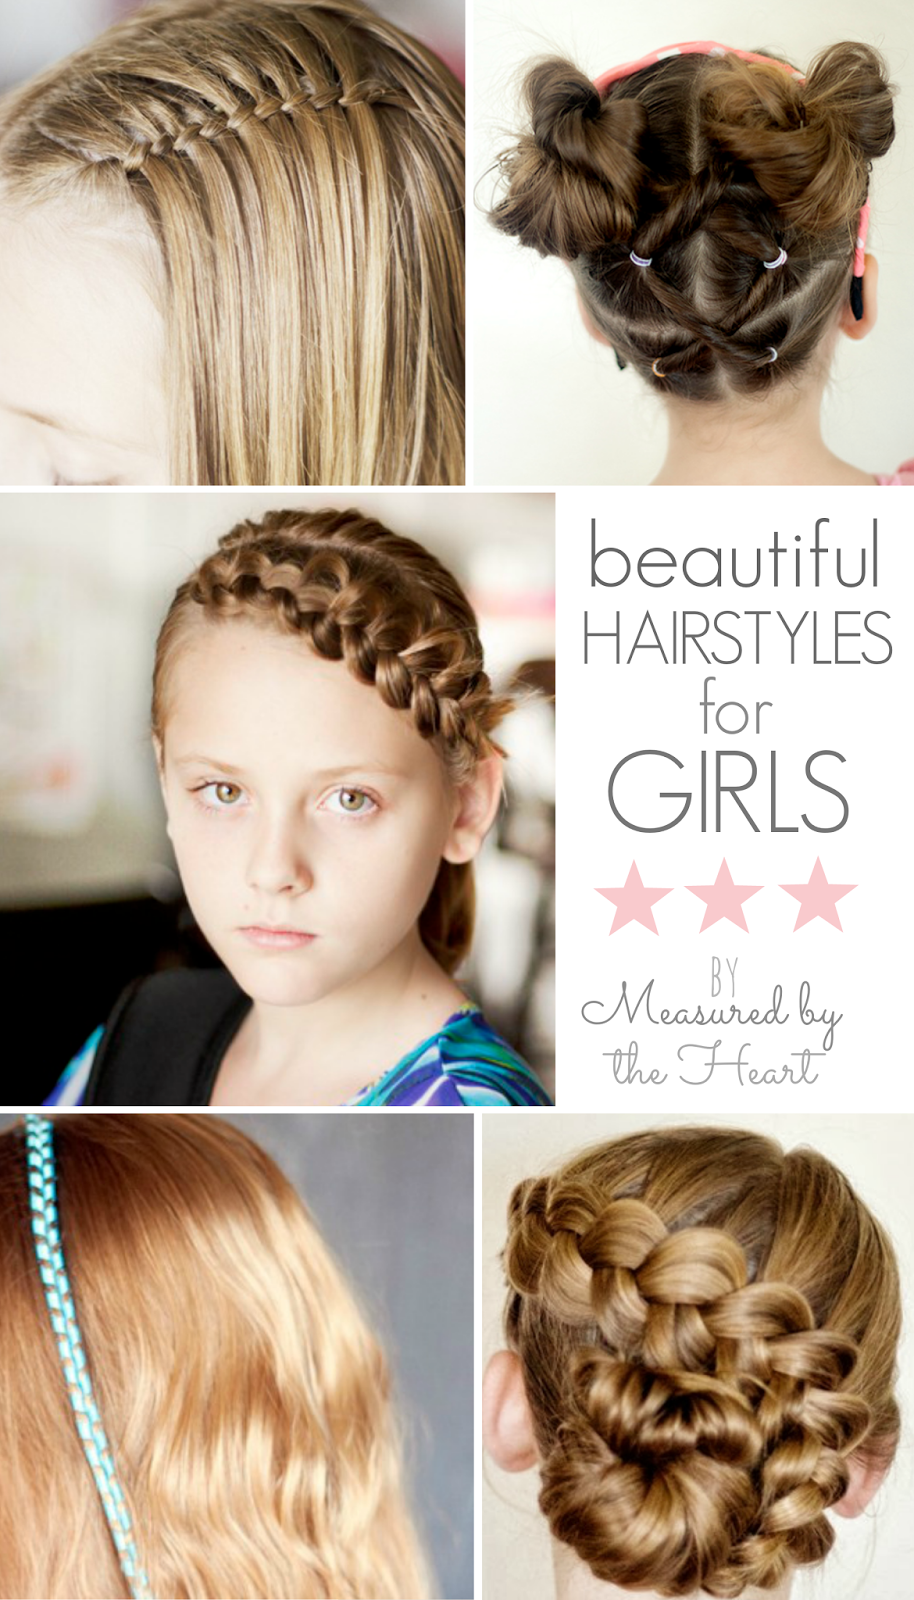 beautiful hairstyles for girls   hair and makeup   hair